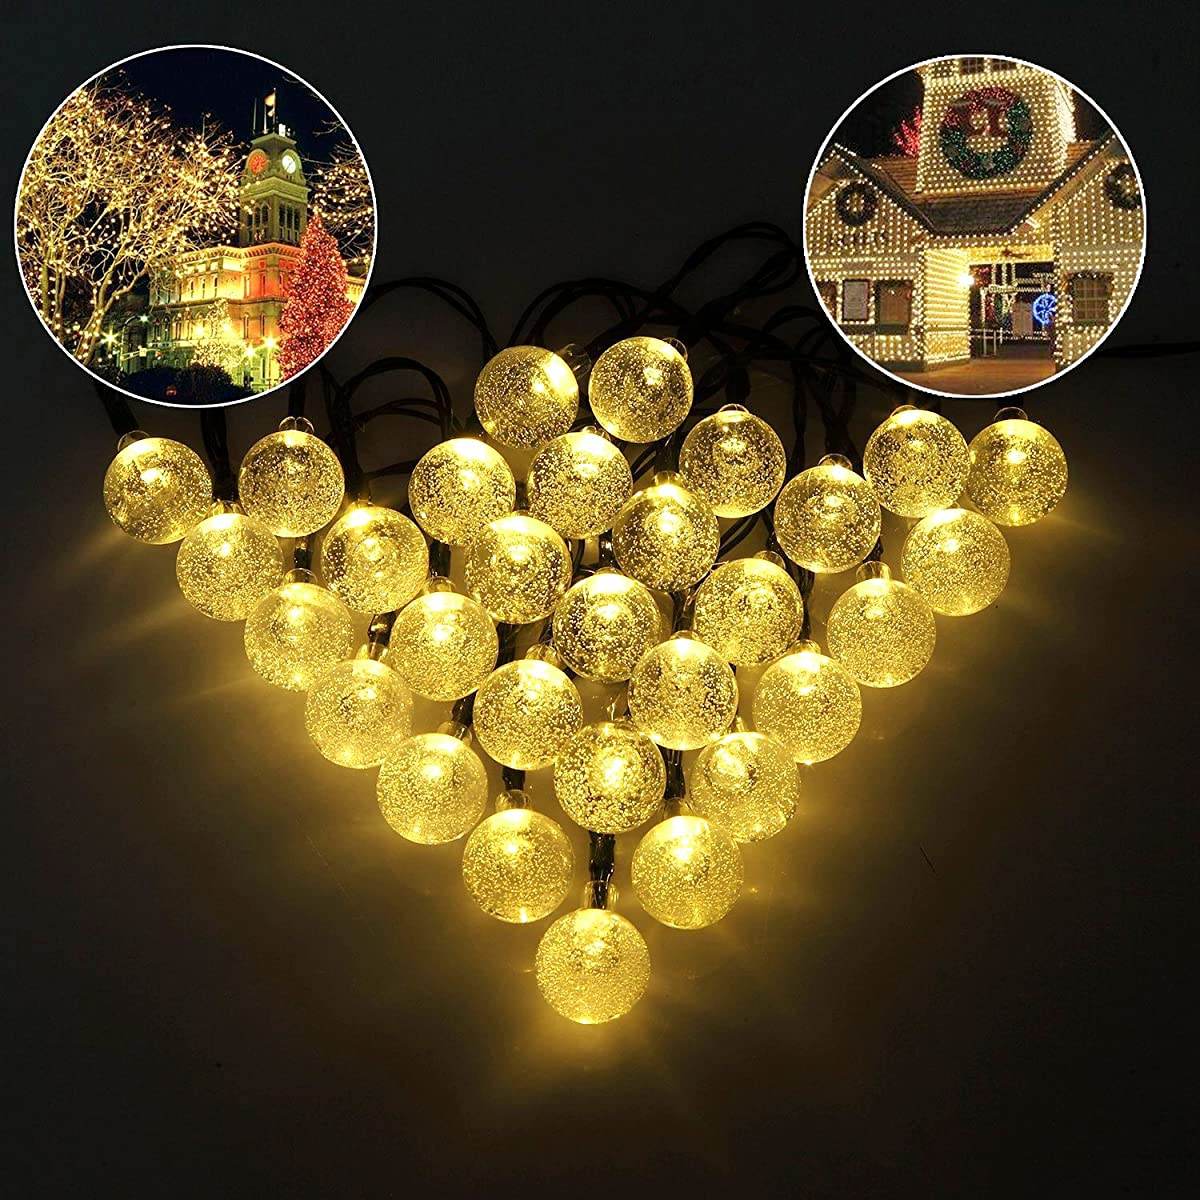 Globe string lights cmyk 20 ft 30 crystal balls waterproof led globe string lights cmyk 20 ft 30 crystal balls waterproof led fairy lights outdoor starry lights solar workwithnaturefo